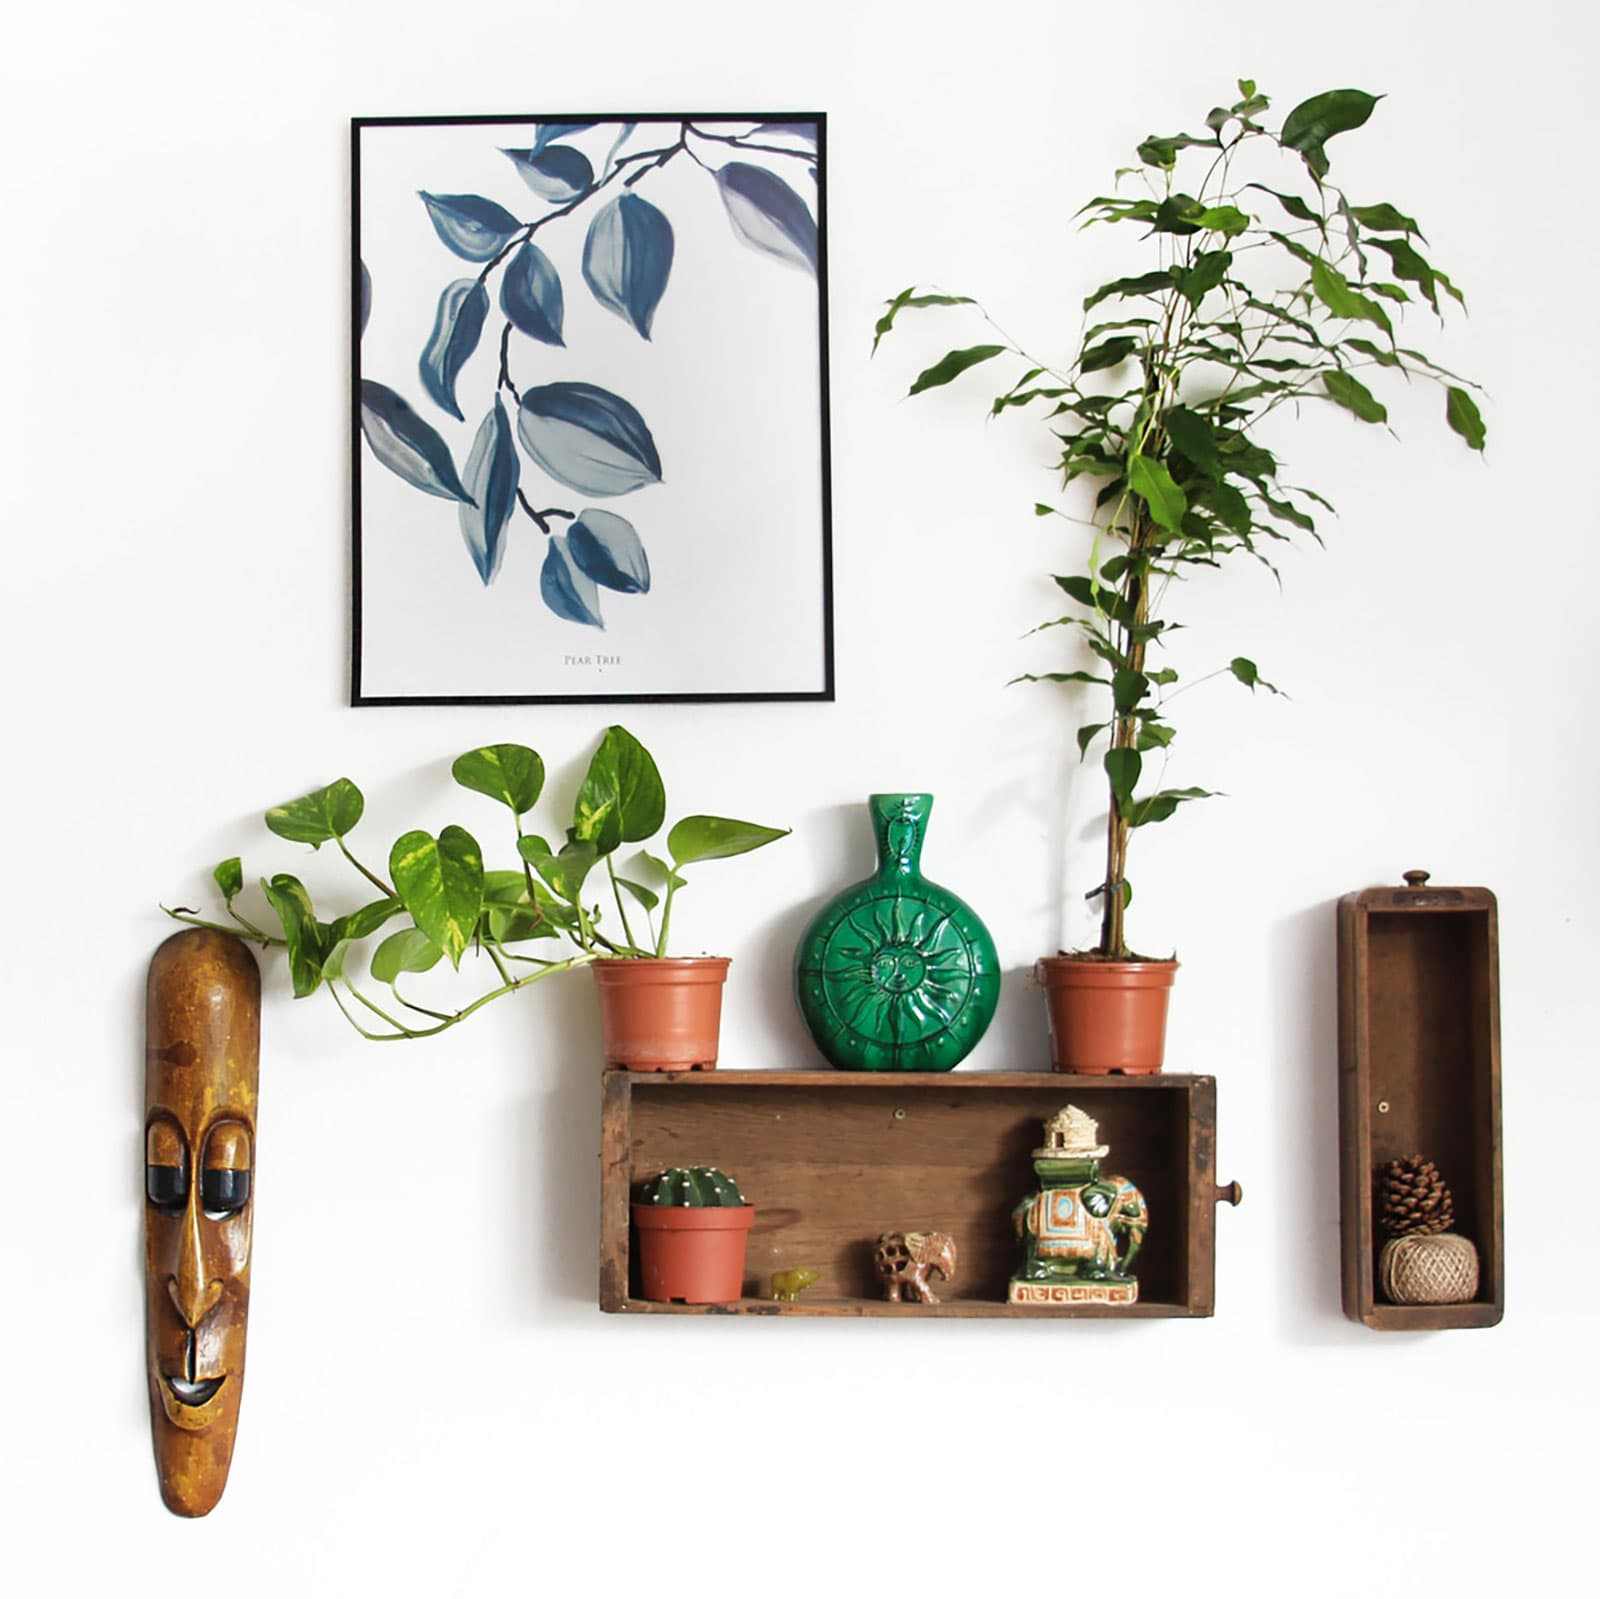 collection of handmade objects on the wall